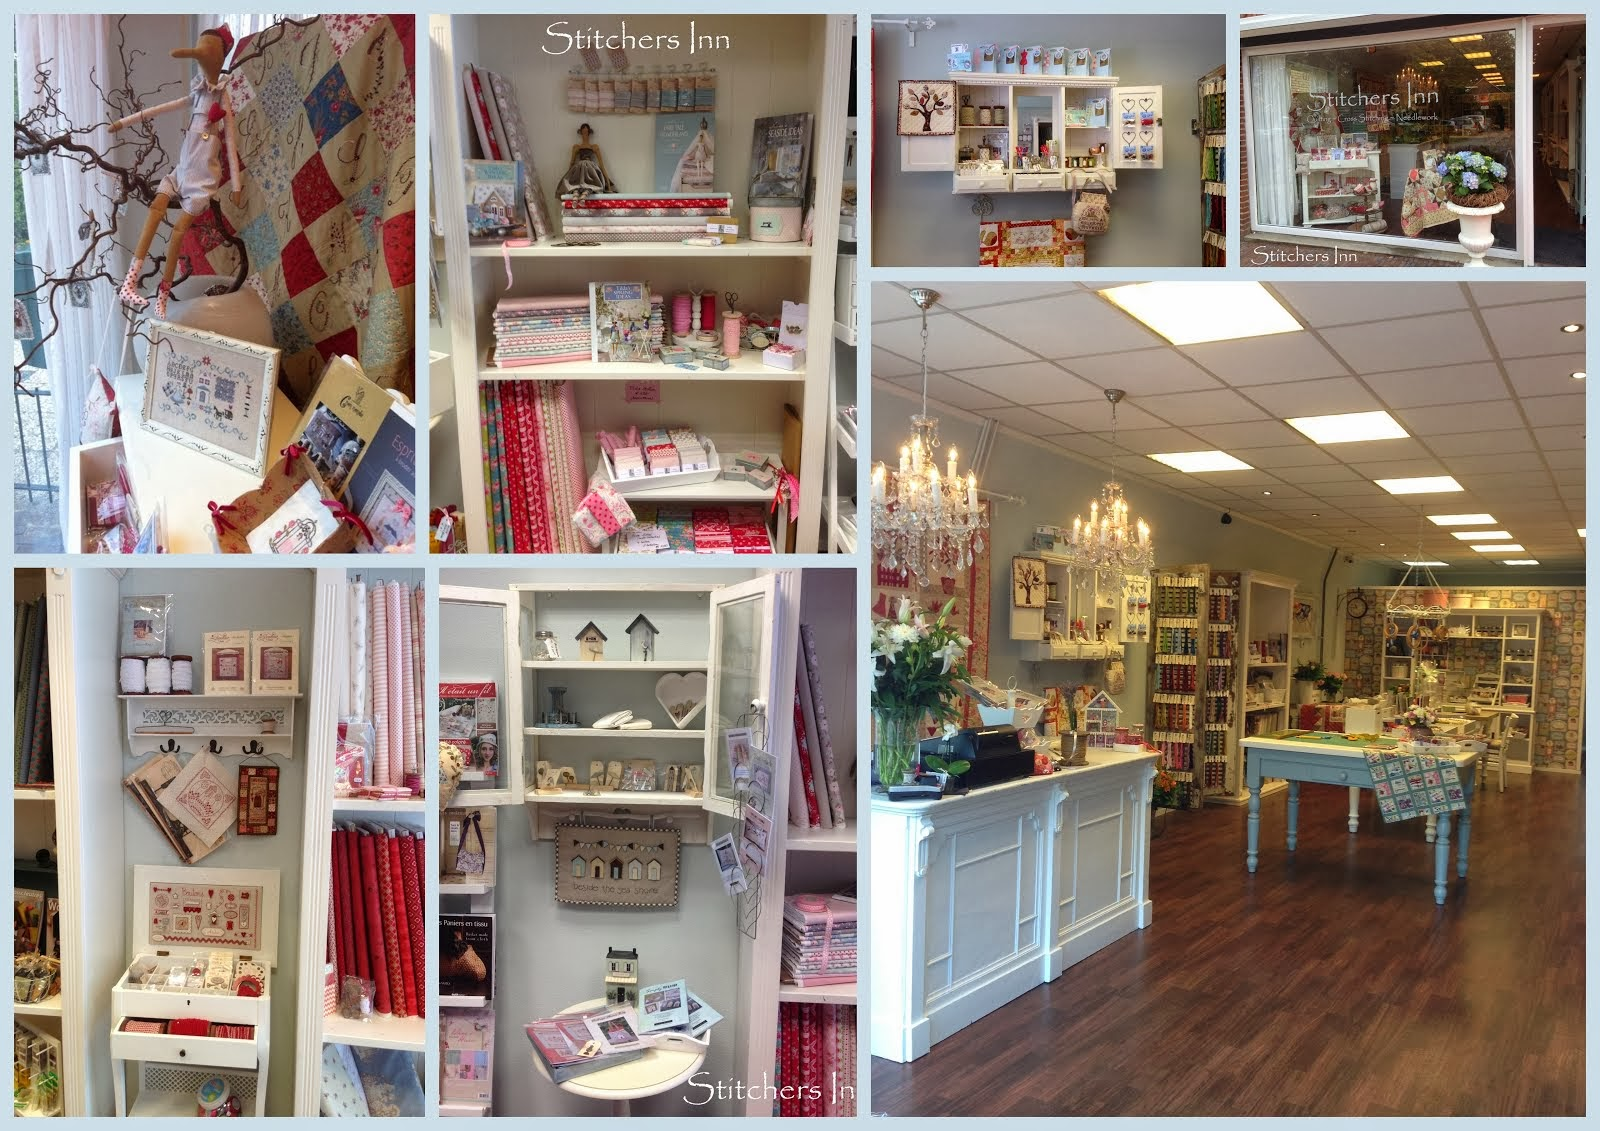 Stitchers Inn Shop